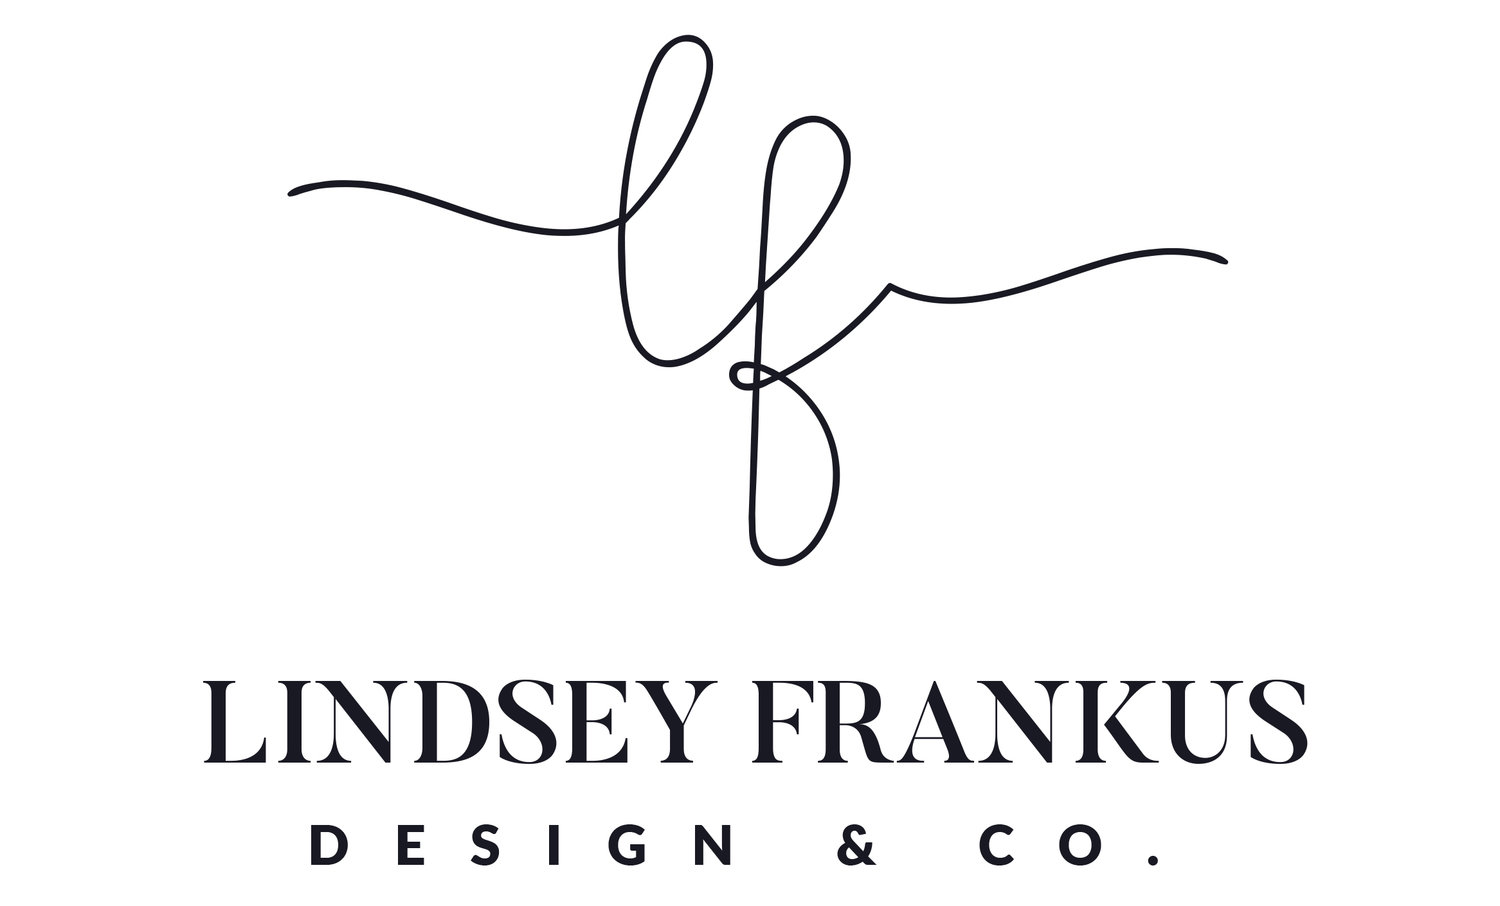 LINDSEY FRANKUS DESIGN & CO.